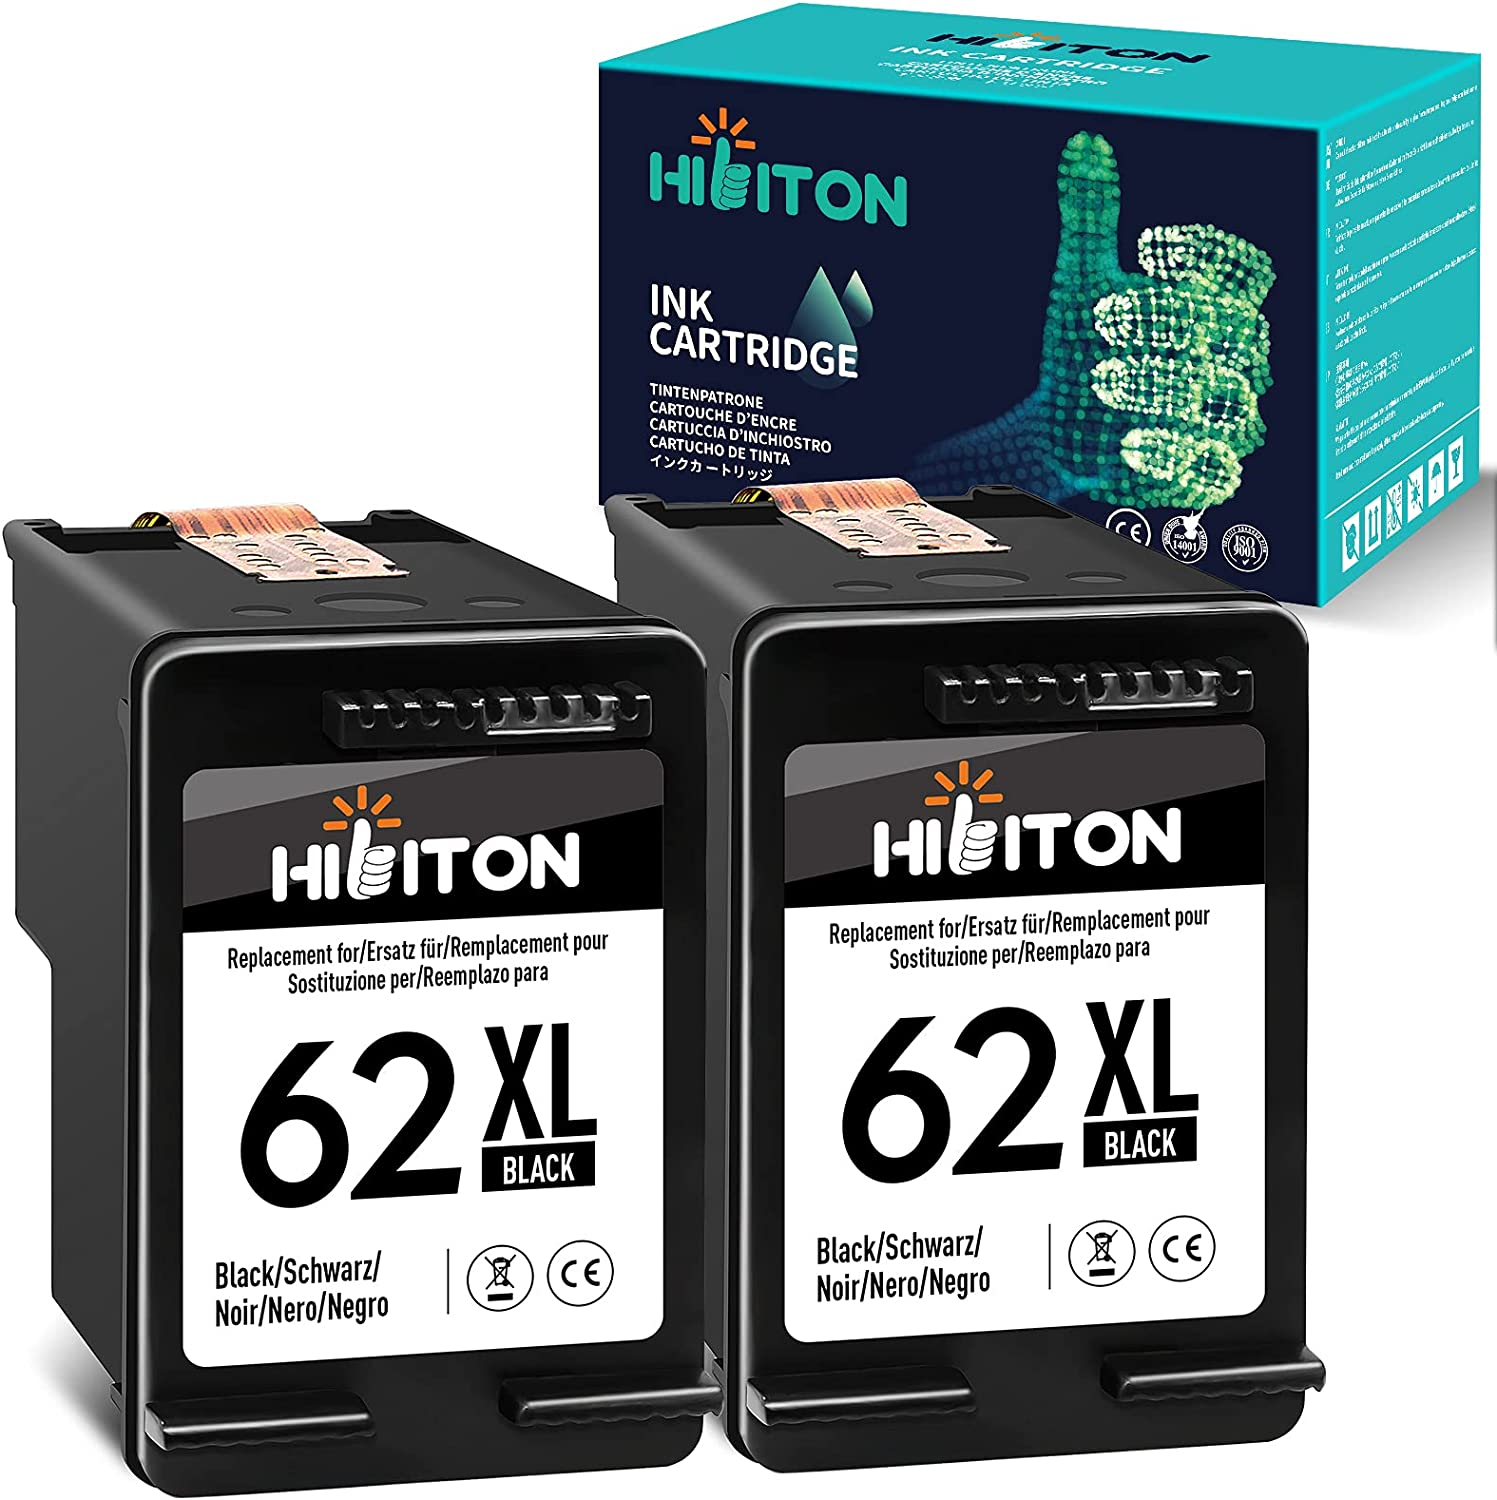 HibiTon Remanufactured Ink Cartridge Replacement for HP 62XL 62 XL Work with Envy 7640 5660 5540 5661 5642 5640 5640 5663 5544 5542 5549 OfficeJet 5740 250 5745 5746 200 Printer (Black) 2 Pack